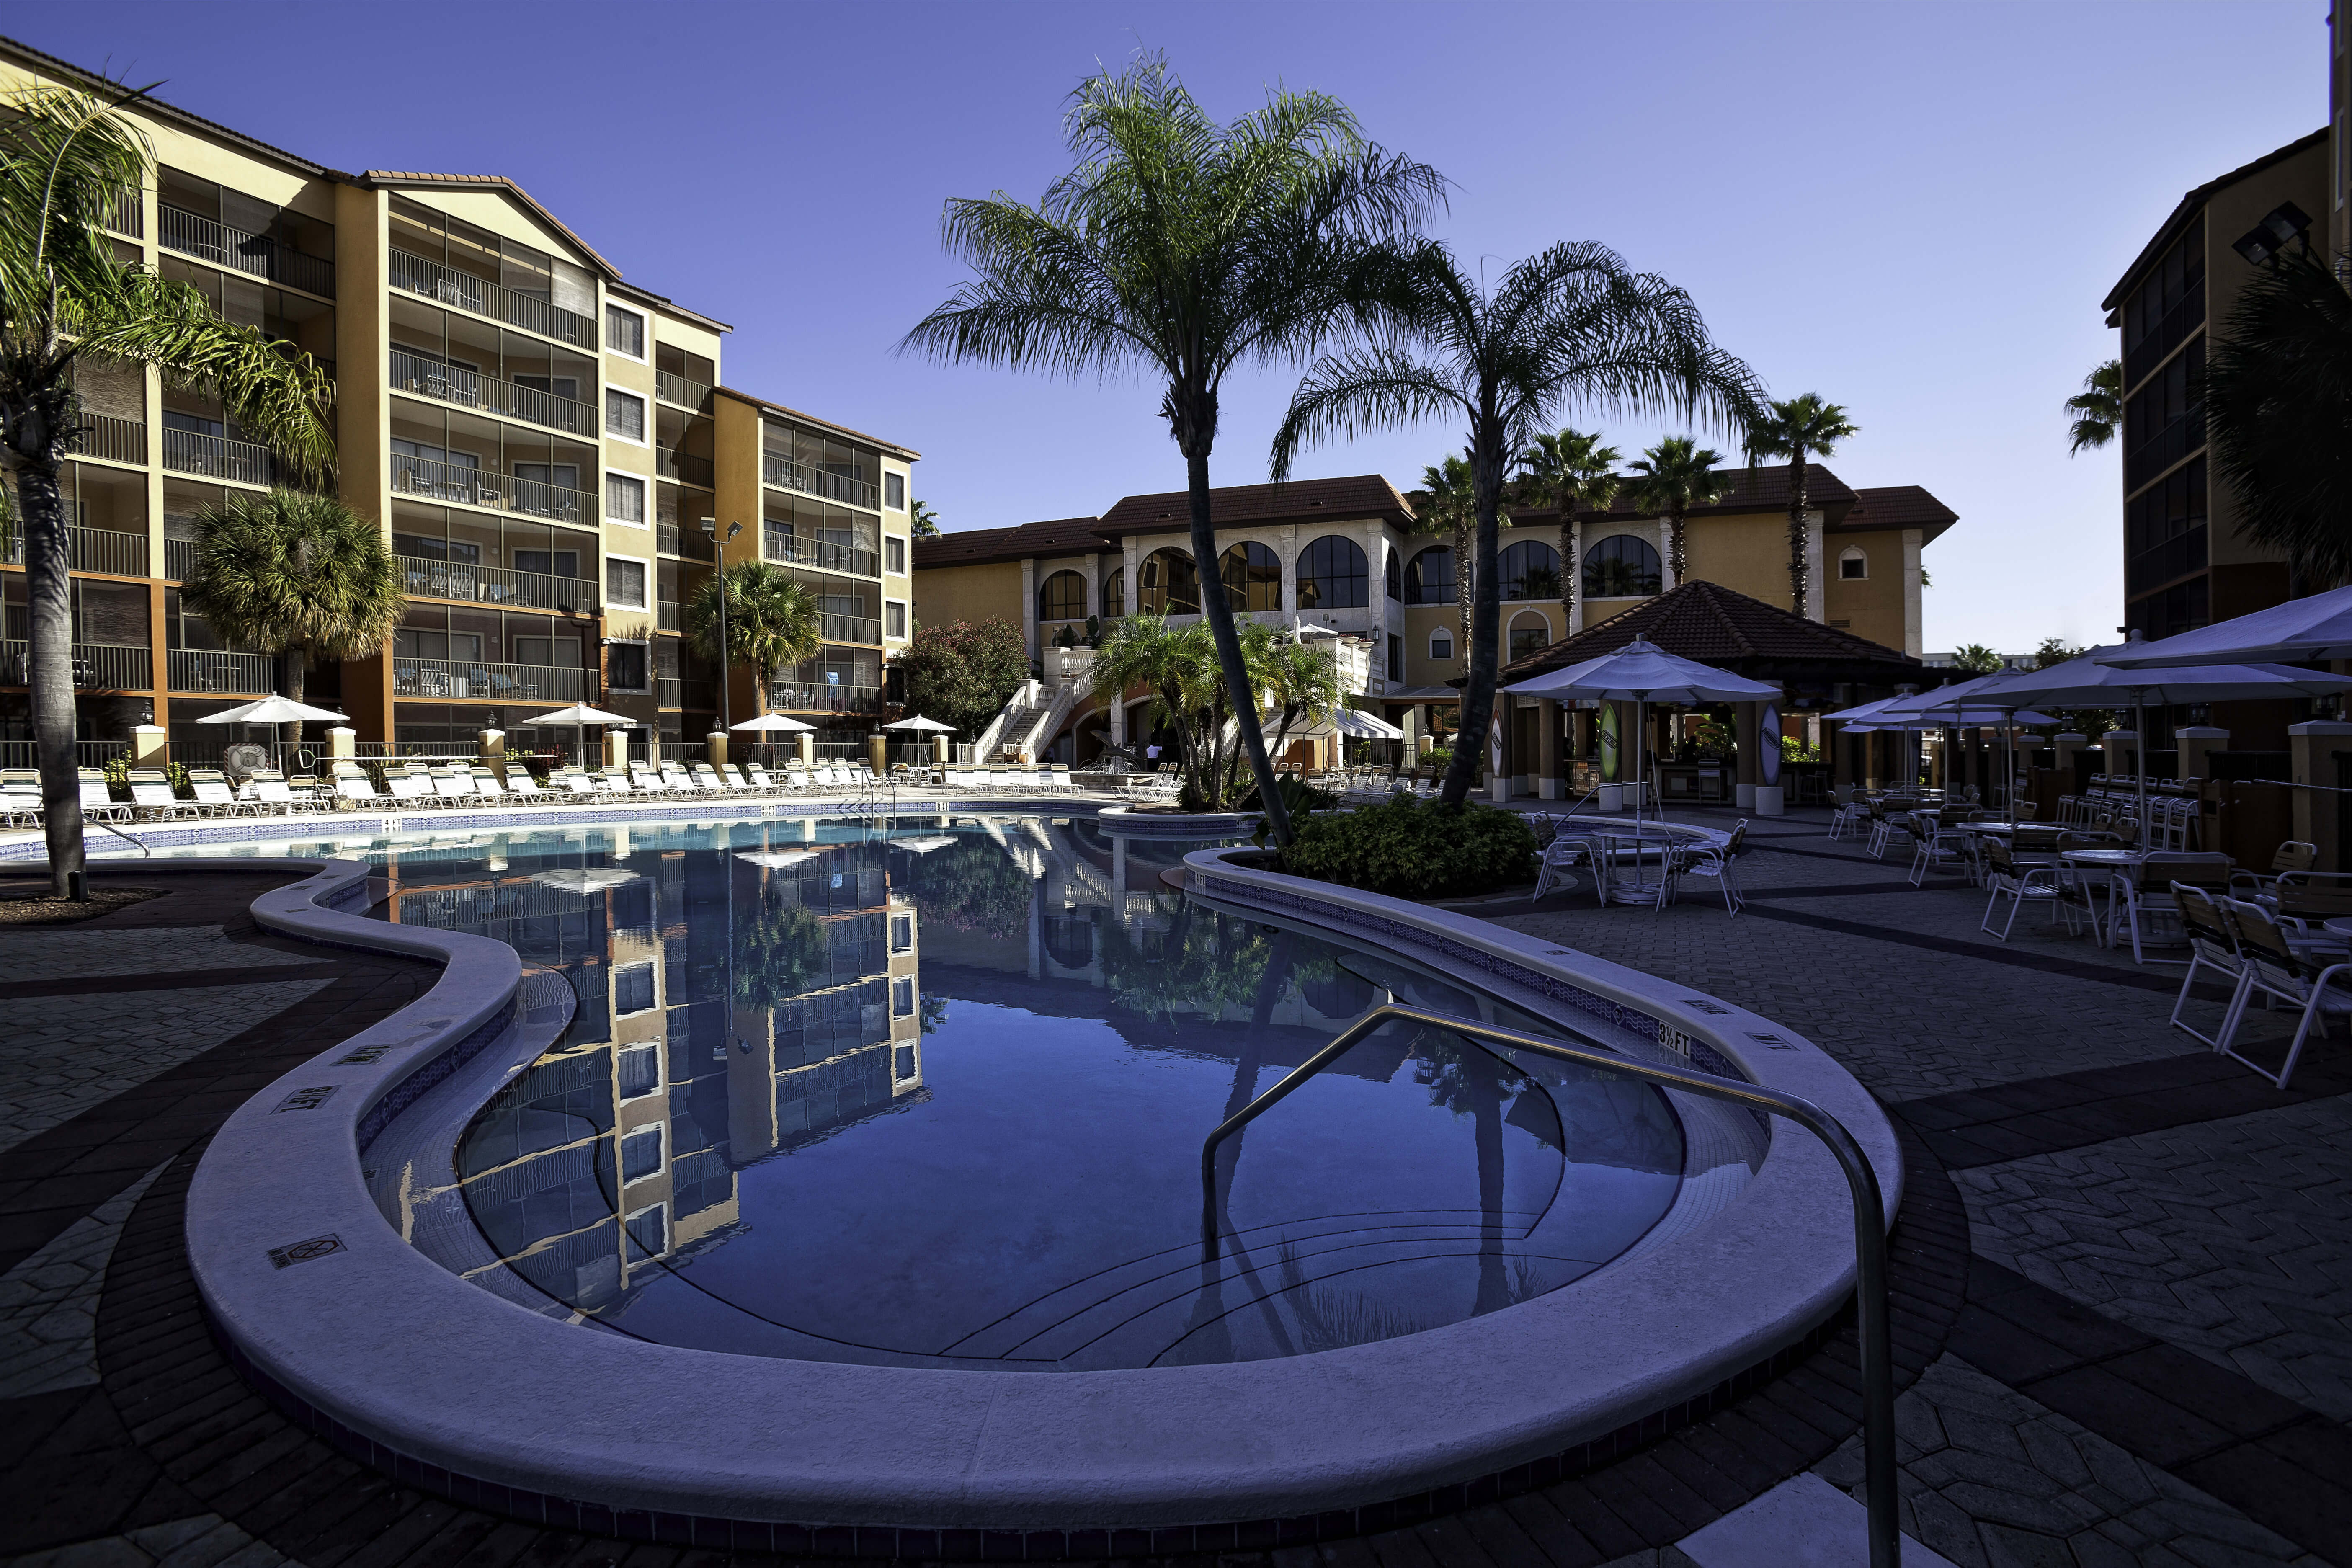 Outdoor Pool in Late Afternoon | Westgate Lakes Resort & Spa | Orlando, FL | Westgate Resorts